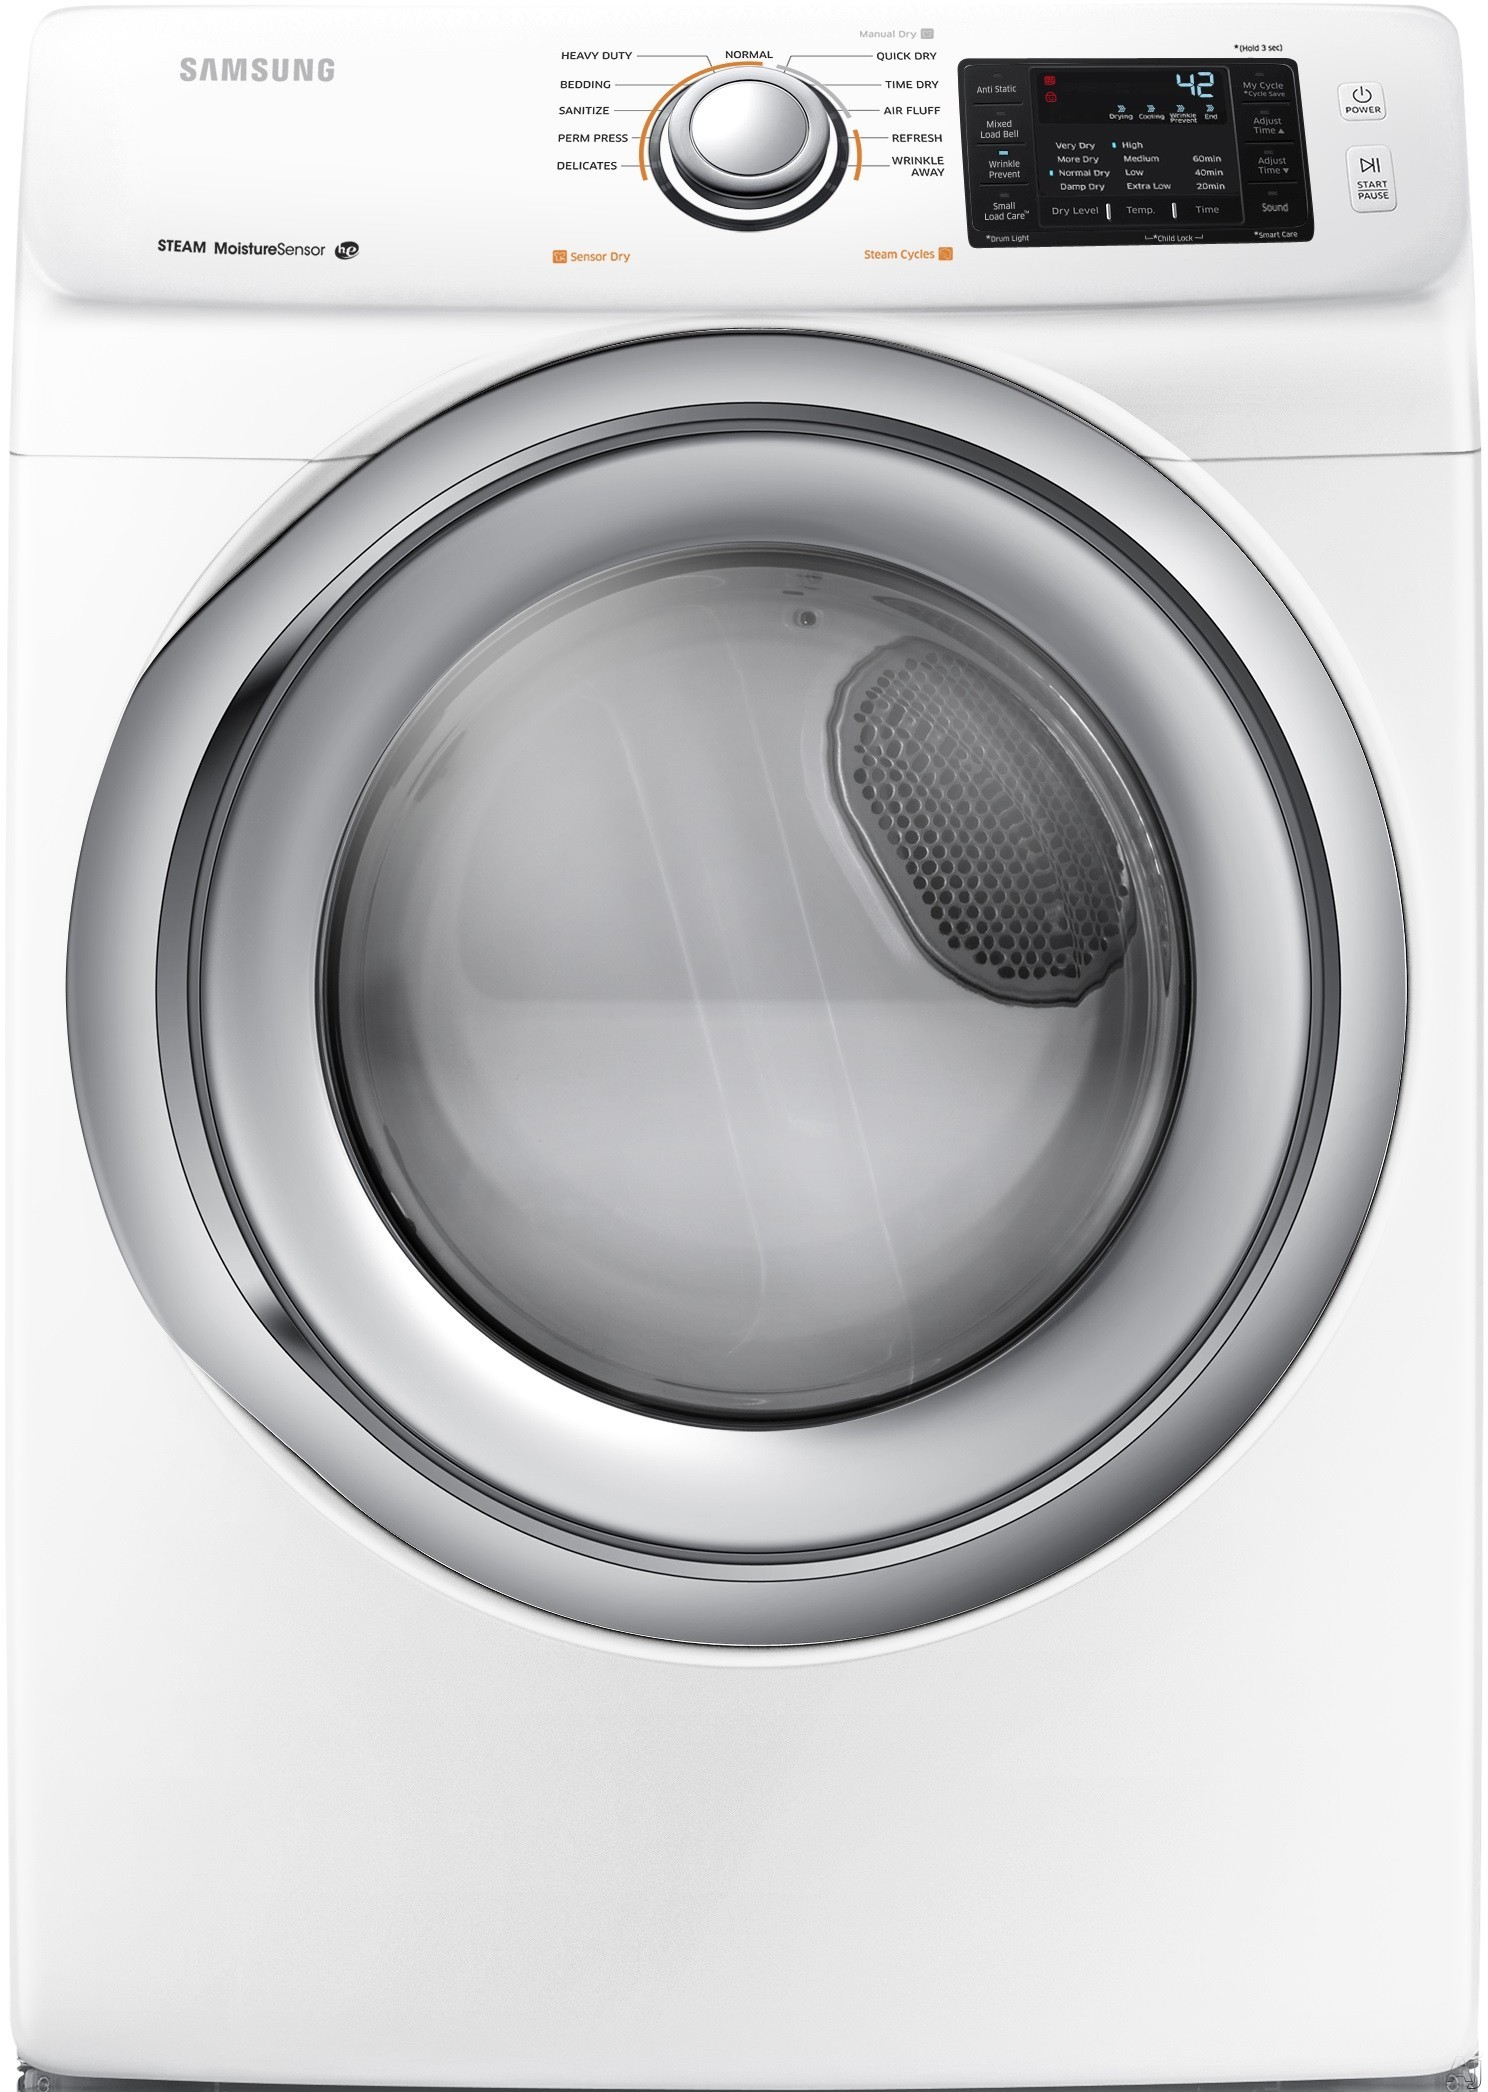 Image of Samsung DV42H5200GW 27 Inch Gas Dryer with Steam, Wrinkle Prevent, Sensor Dry, 11 Dry Cycles, 4 Temperature Settings, Smart Care, Lint Filter Indicator, Reversible Door and 7.4 cu. ft. Capacity: White